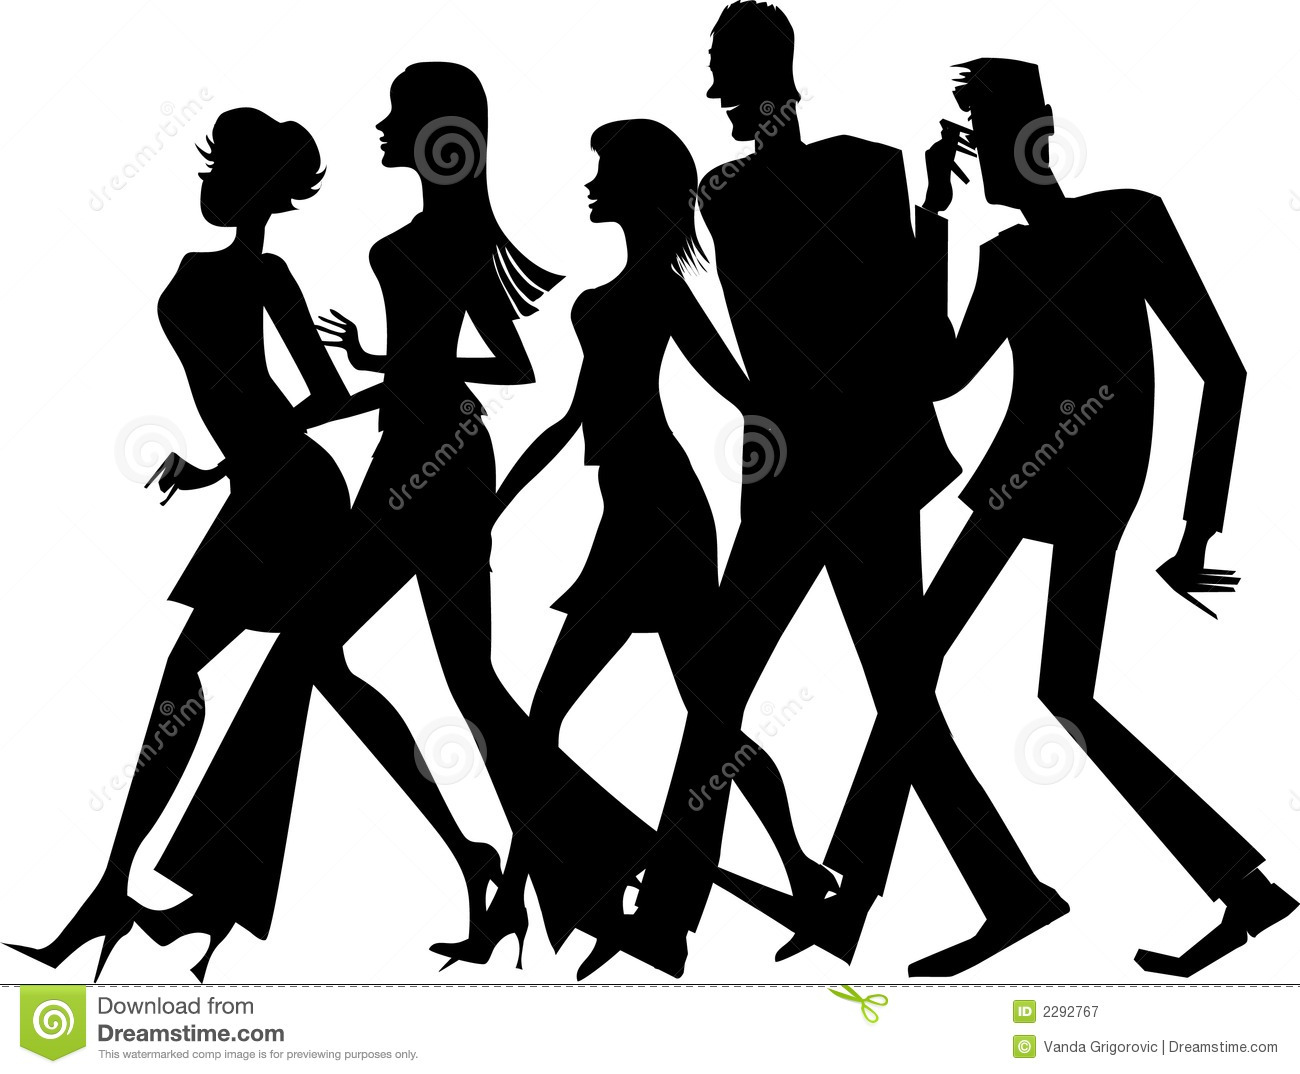 Group of people walking clipart.